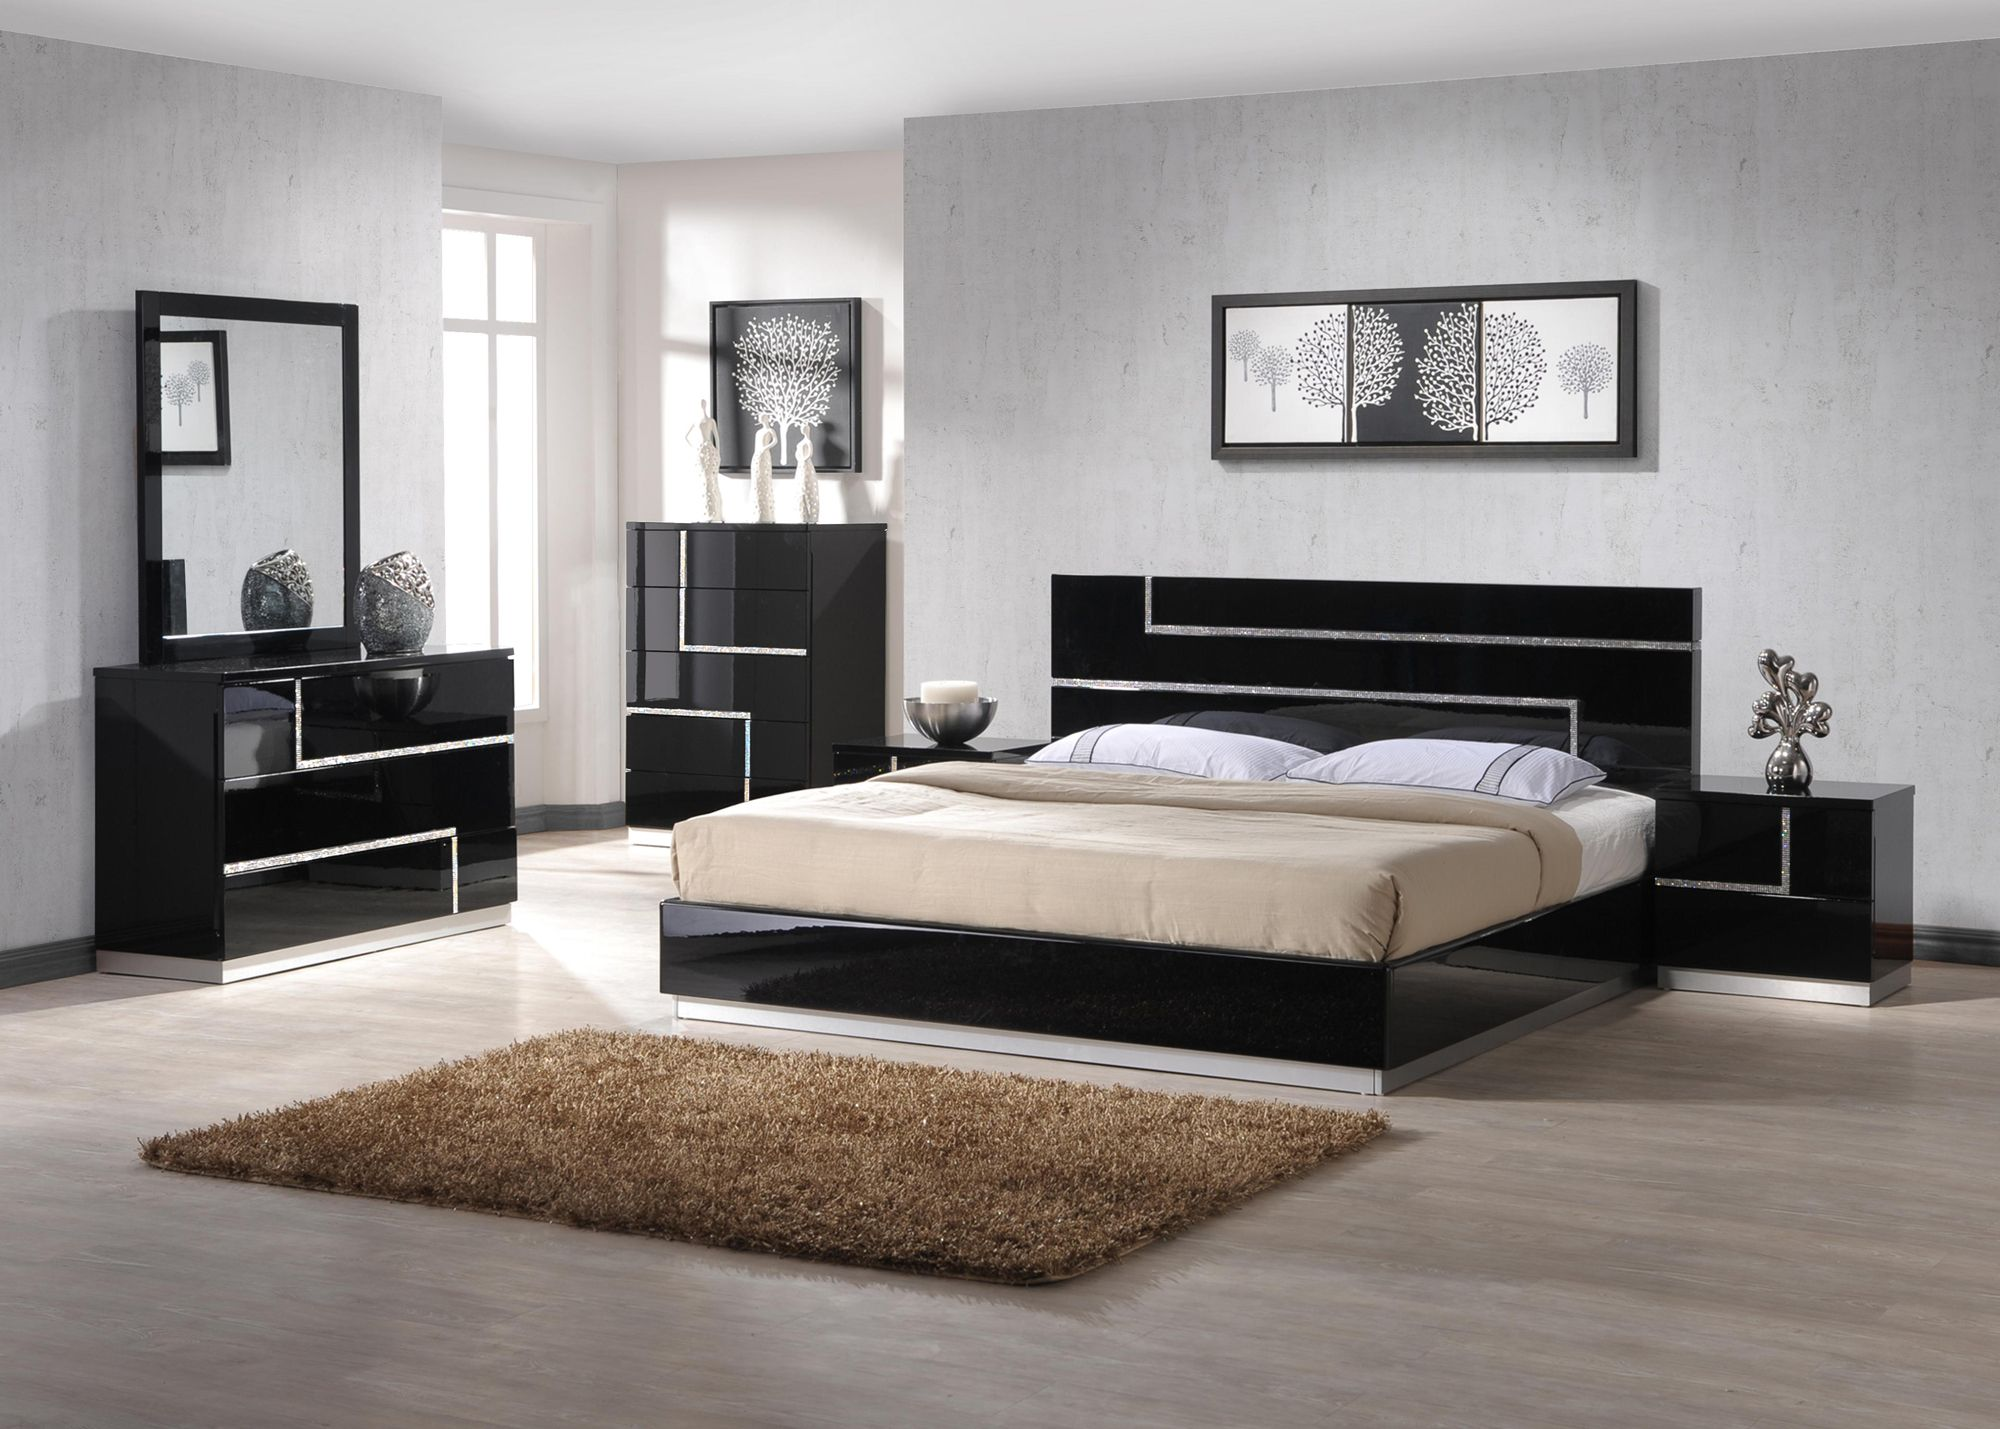 Modern Bedroom Furniture Sets Cheap photo design bed Pinterest